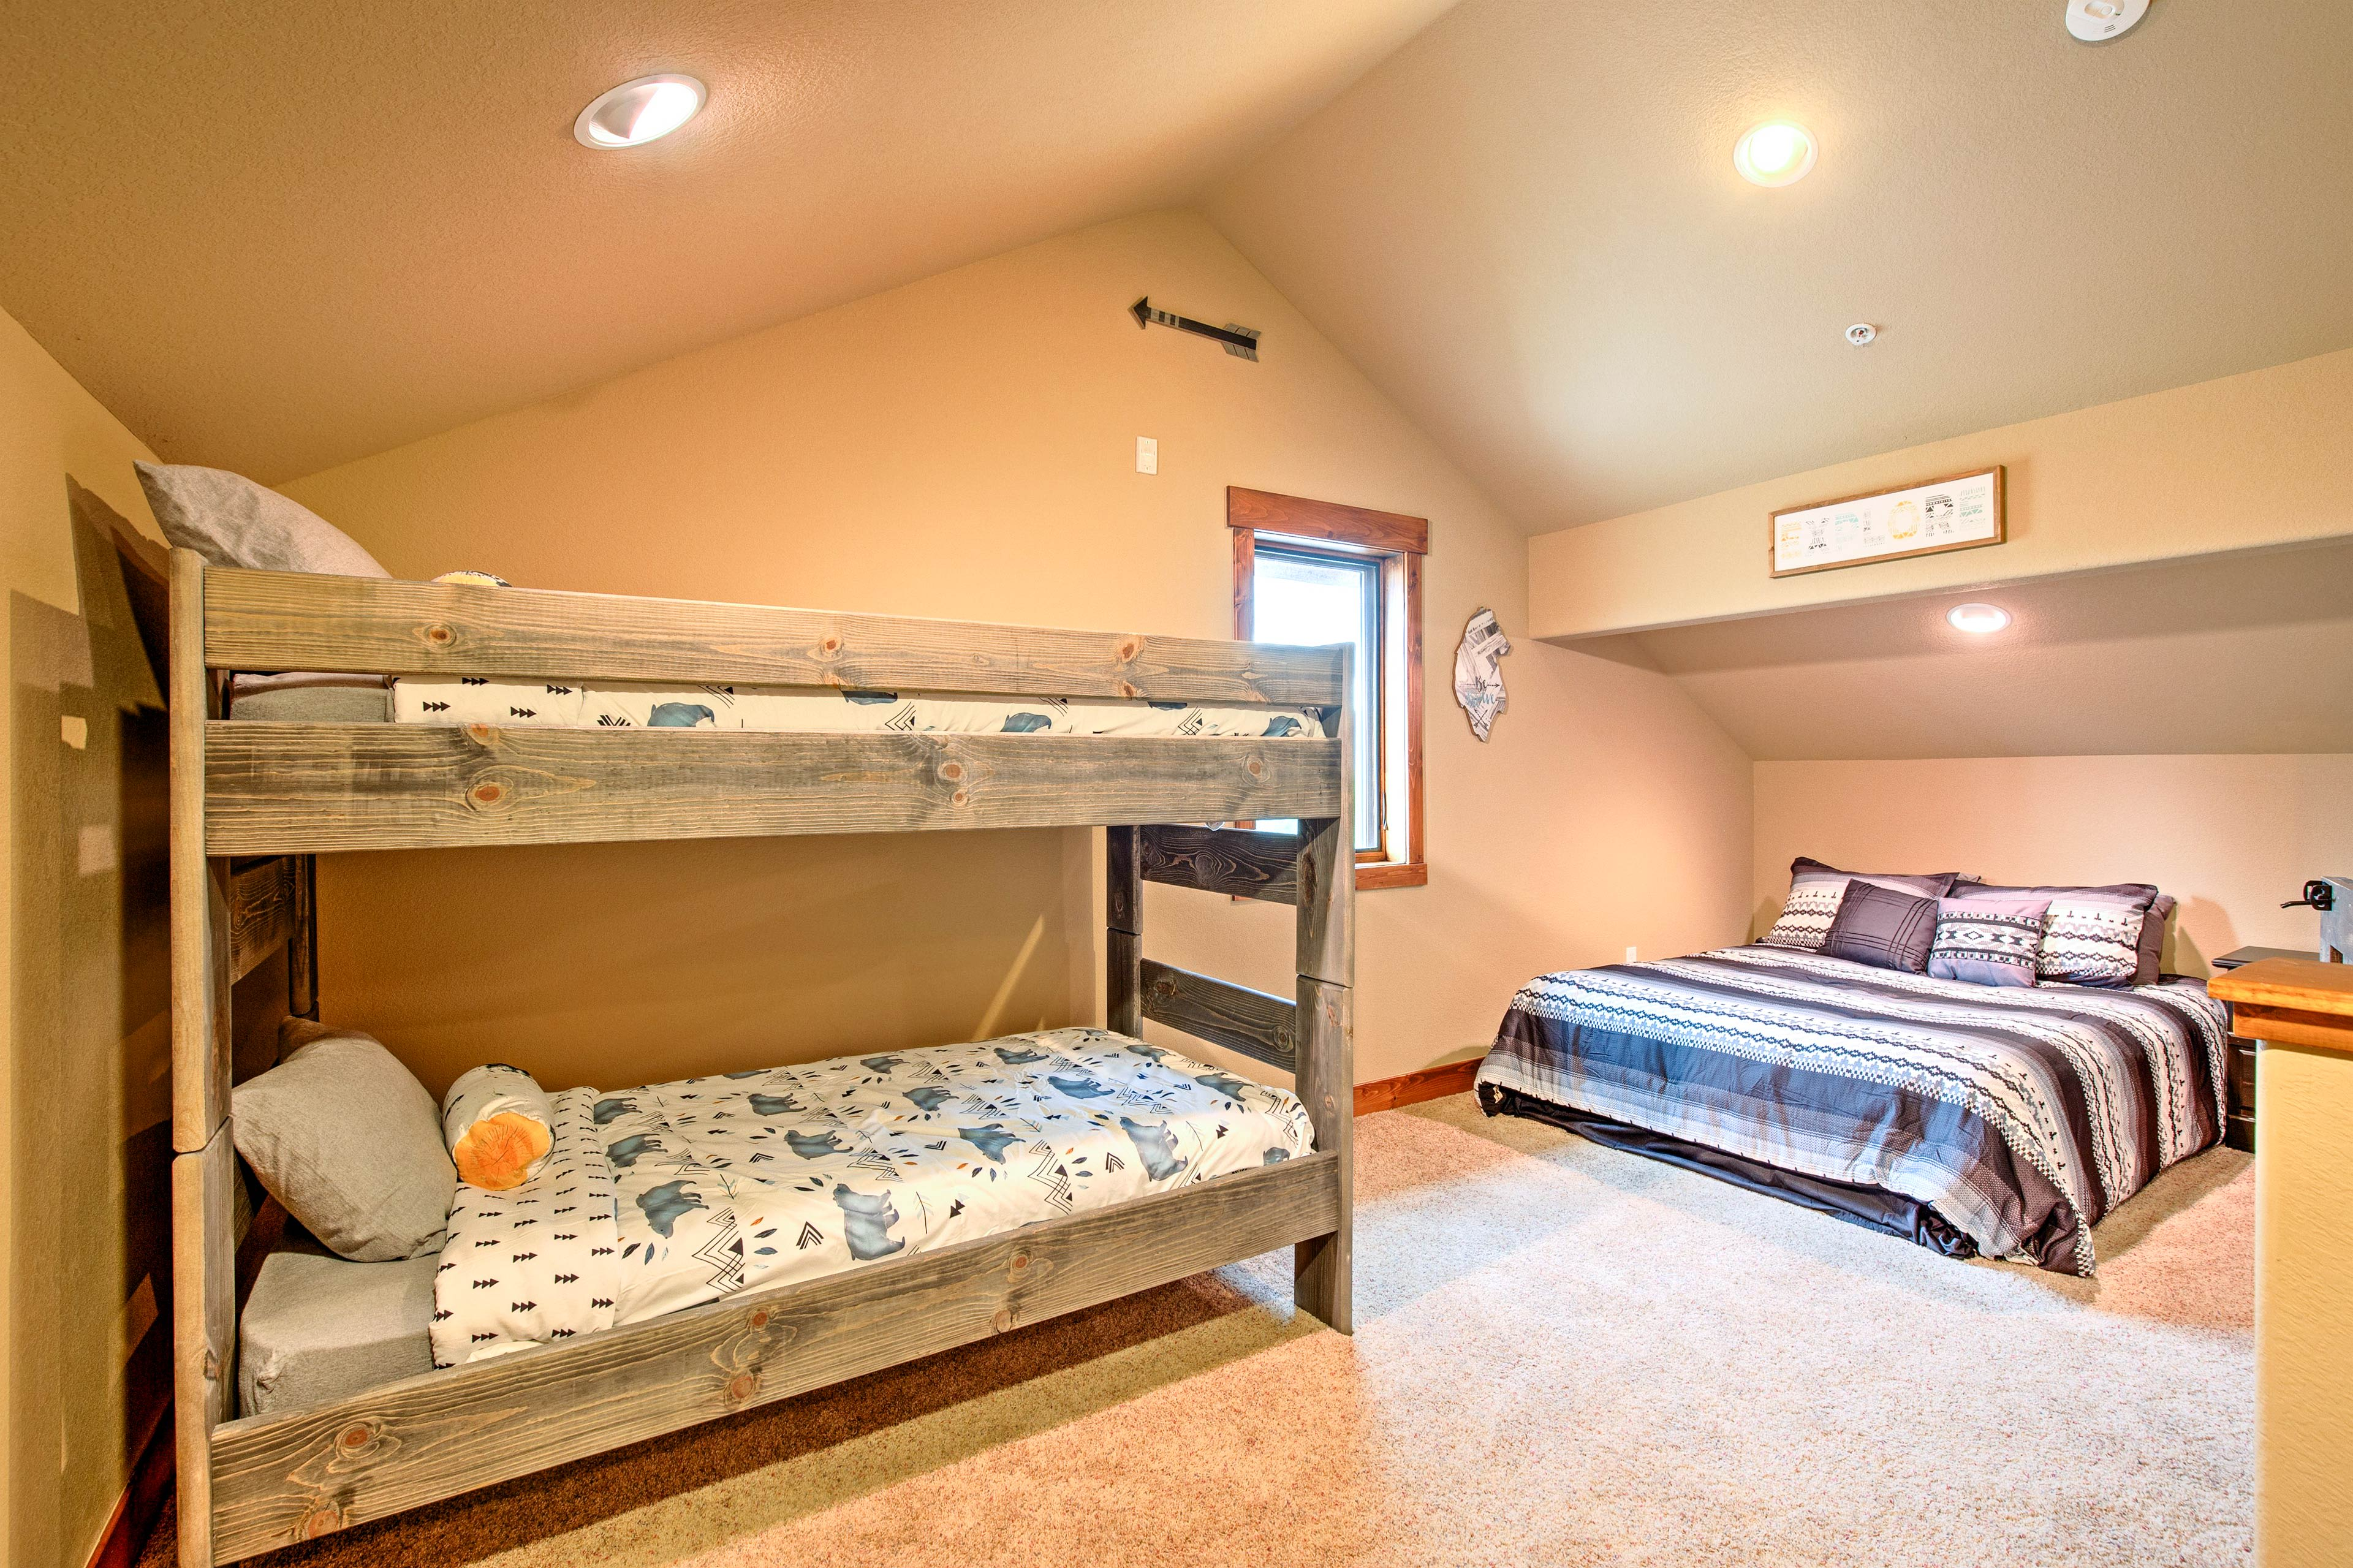 There's also a queen bed in this loft space for more sleeping accommodations.